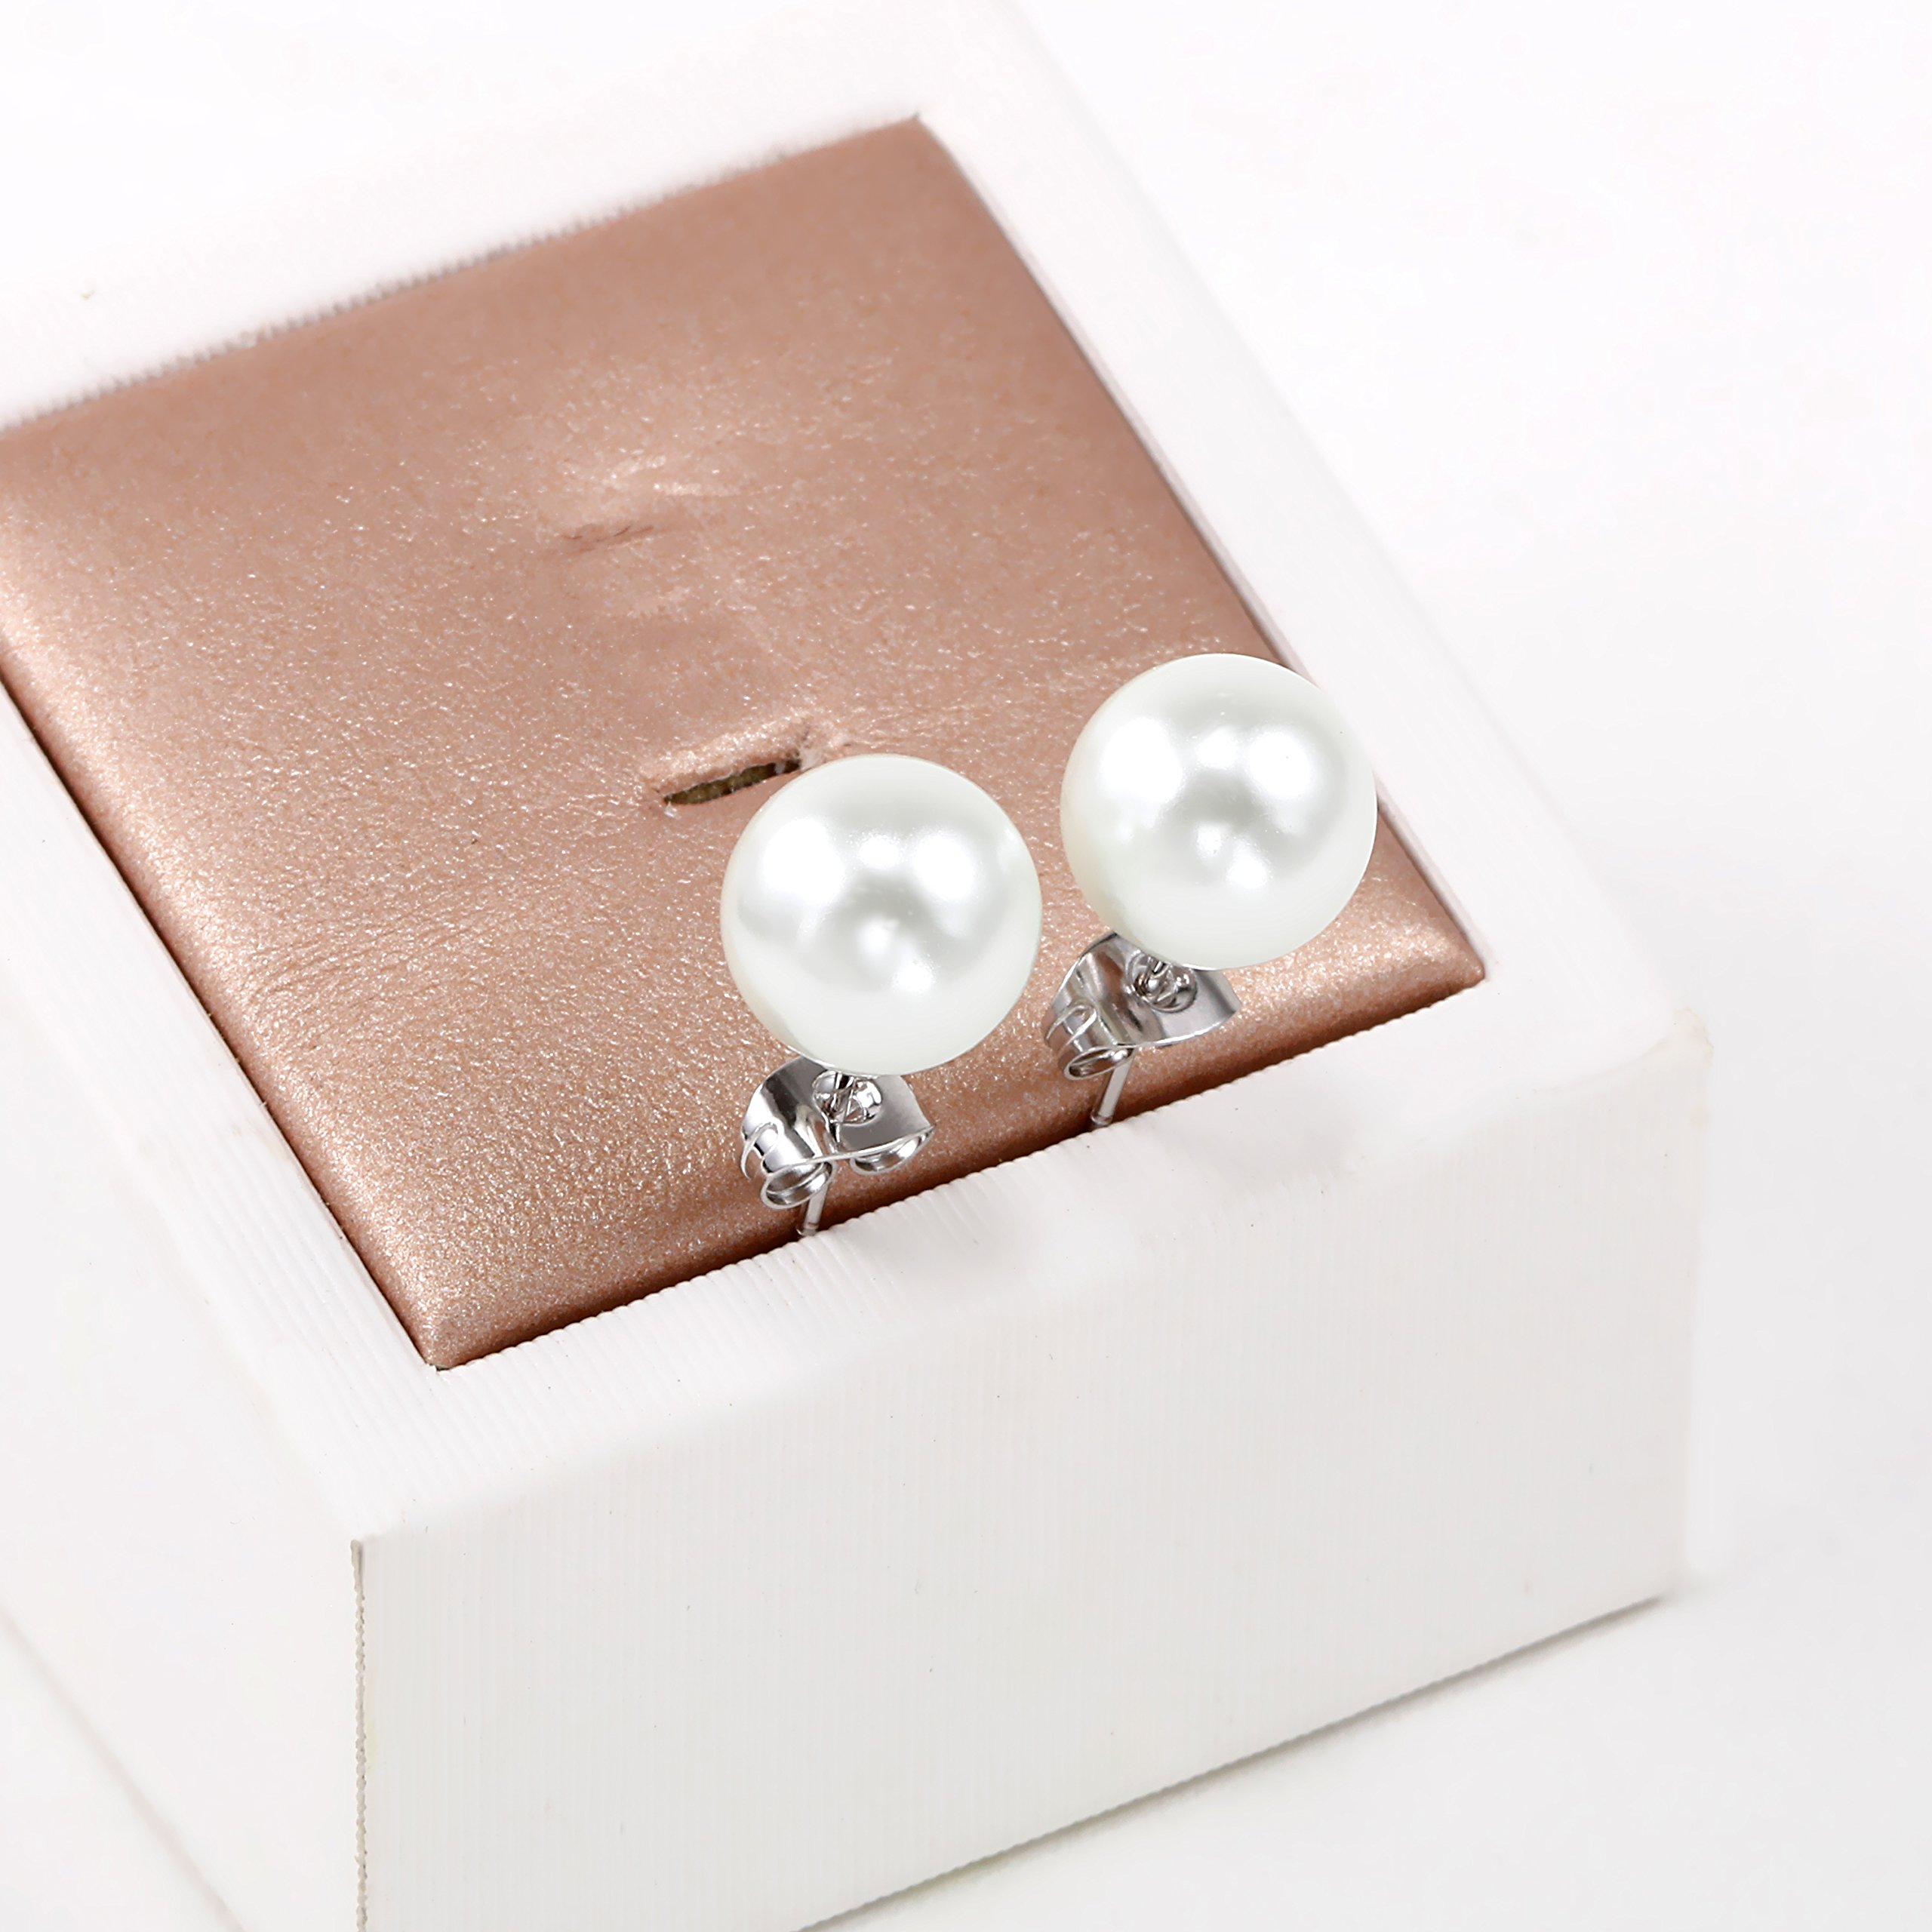 Juliani Freshwater Pearl Studs Earrings - 10mm Simulated White Round Shell 18K Gold Plated for Women Girl